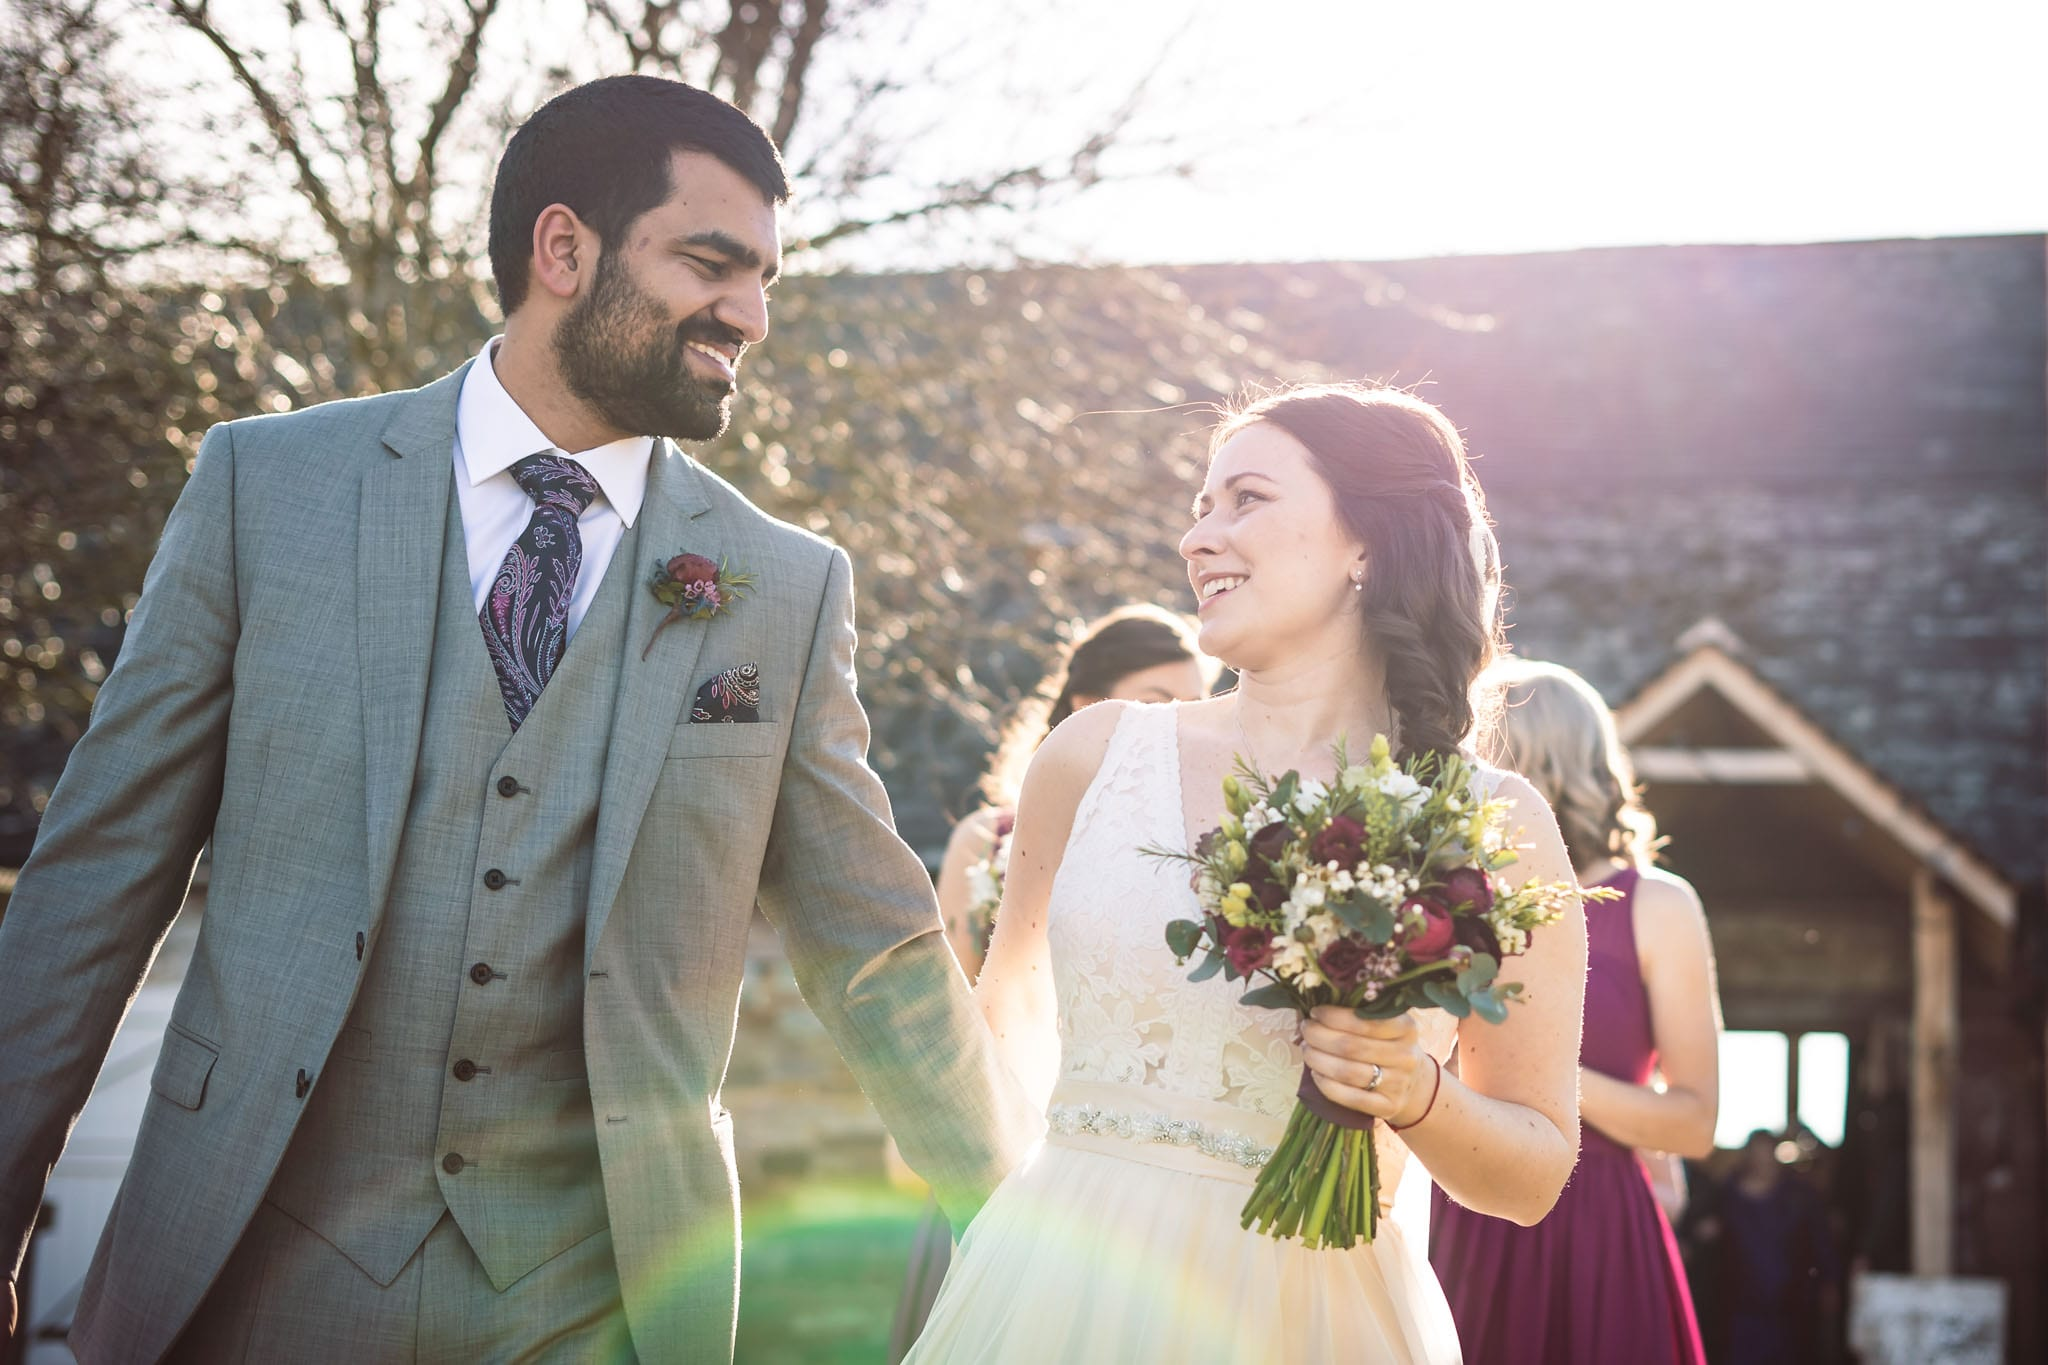 Just married at an Askham Hall wedding in the Lake District